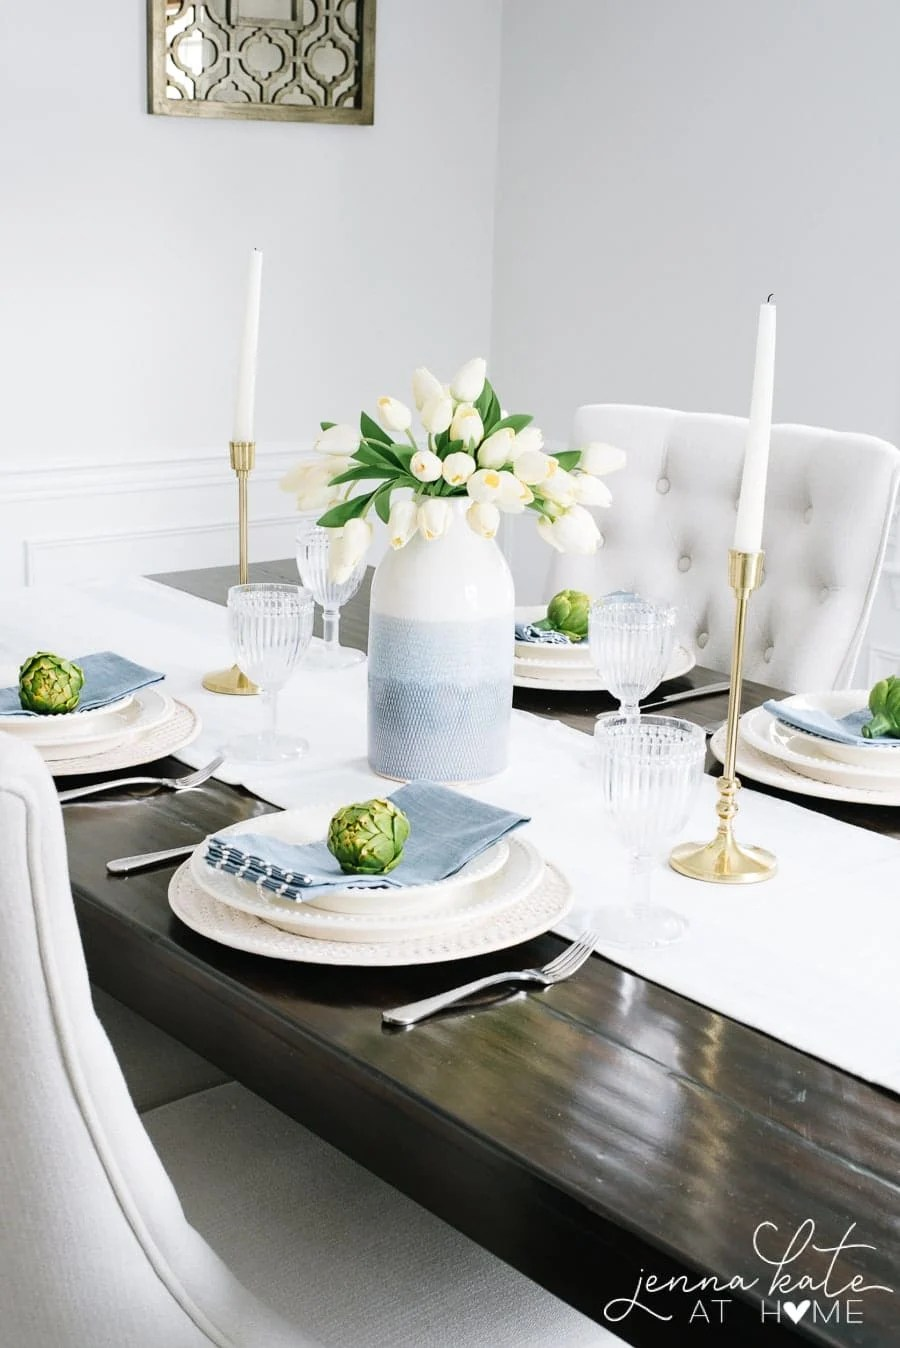 Spring table setting with blue vase and tulips